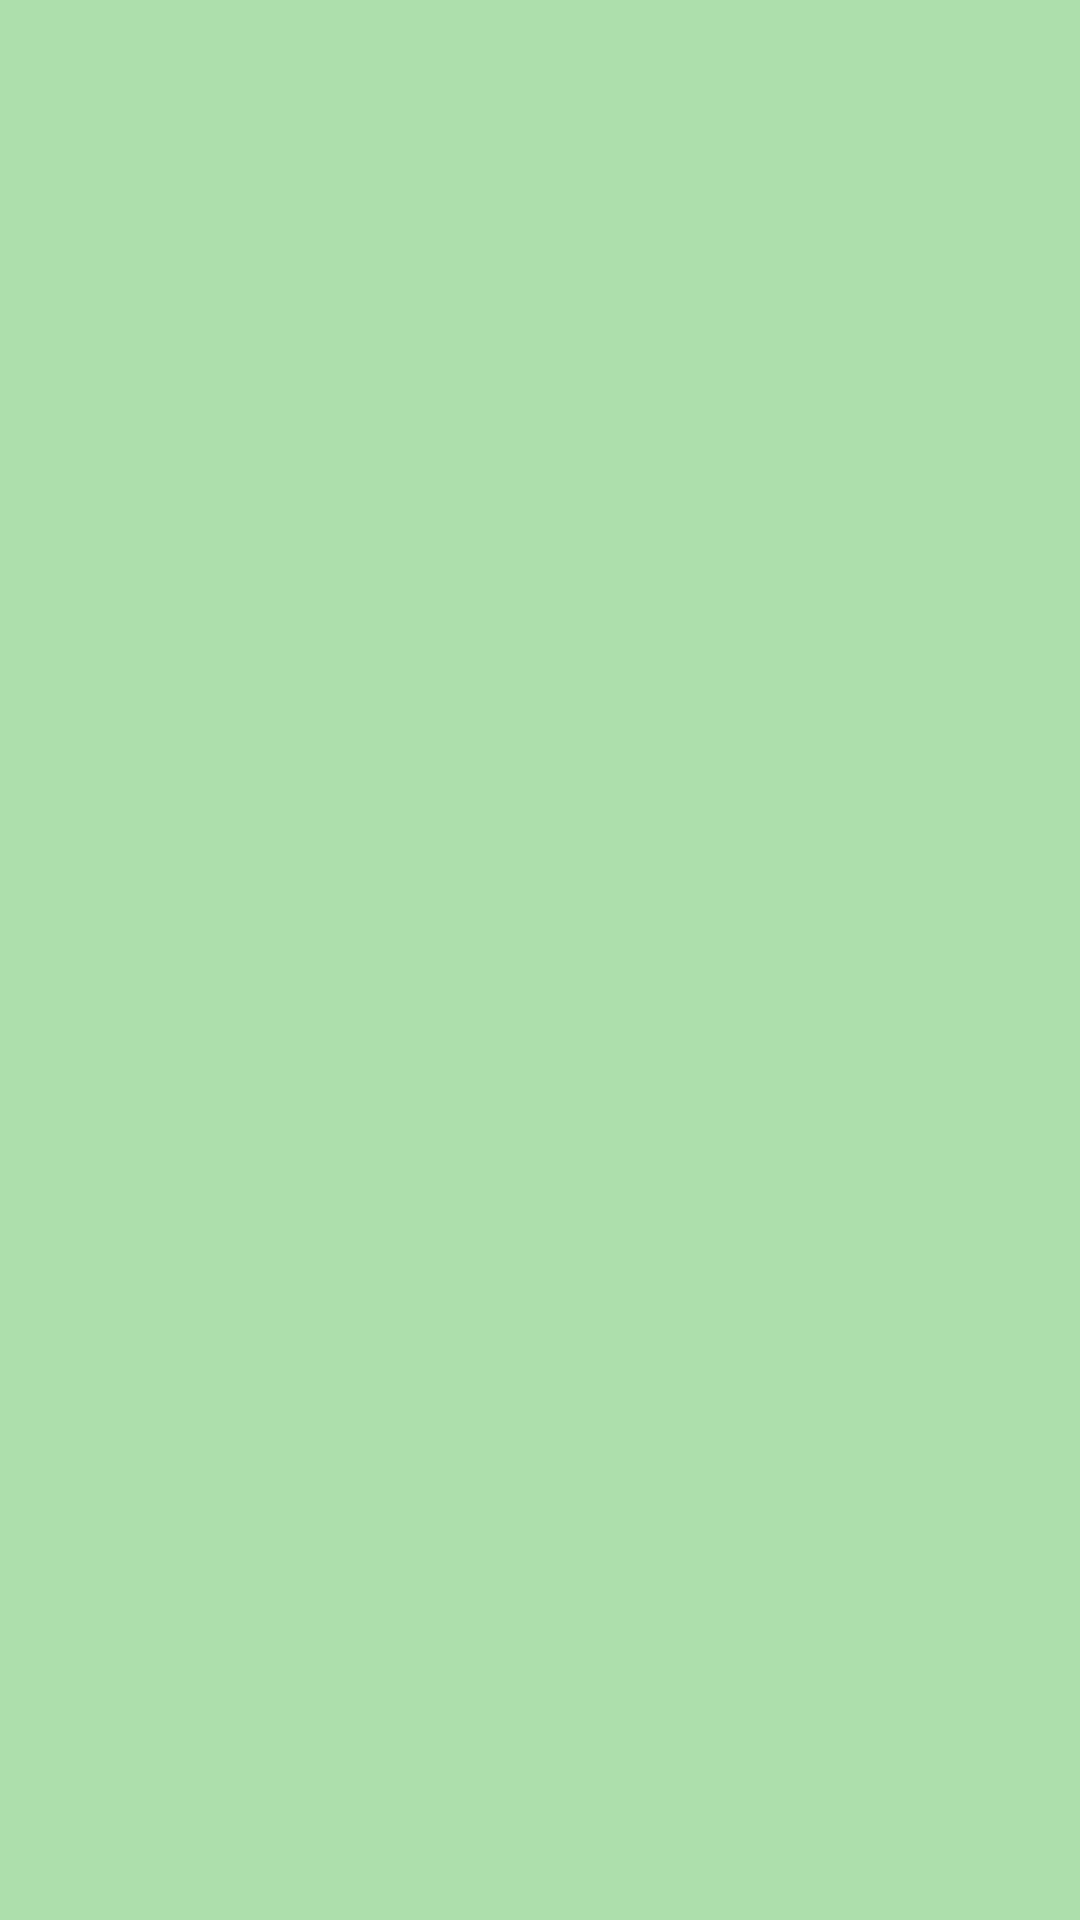 1080x1920 Light Moss Green Solid Color Background